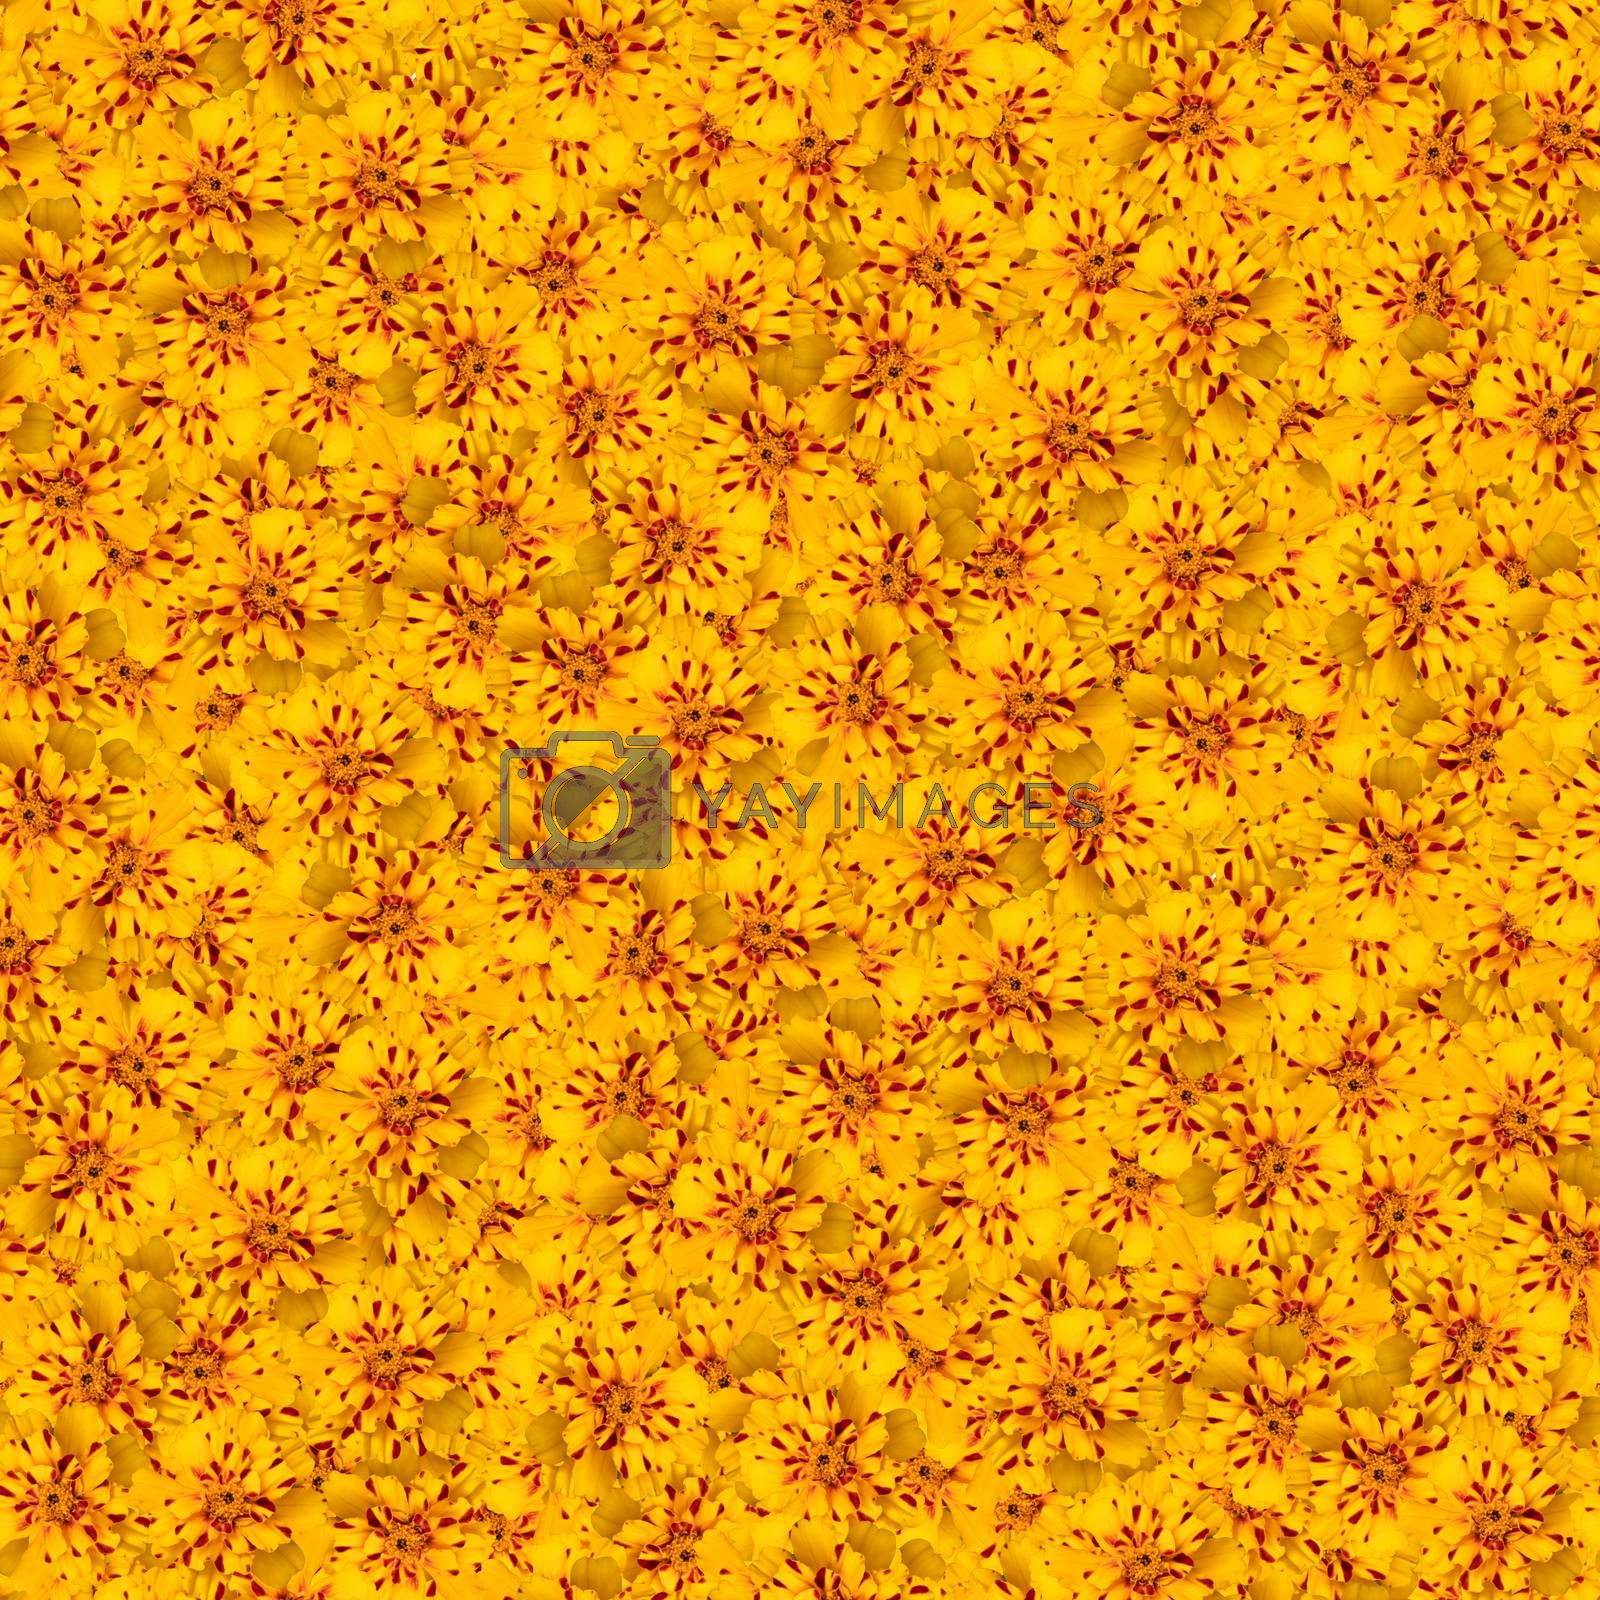 texture of a seamless flower pattern. bright marigolds. decorative design elements by kamrad71